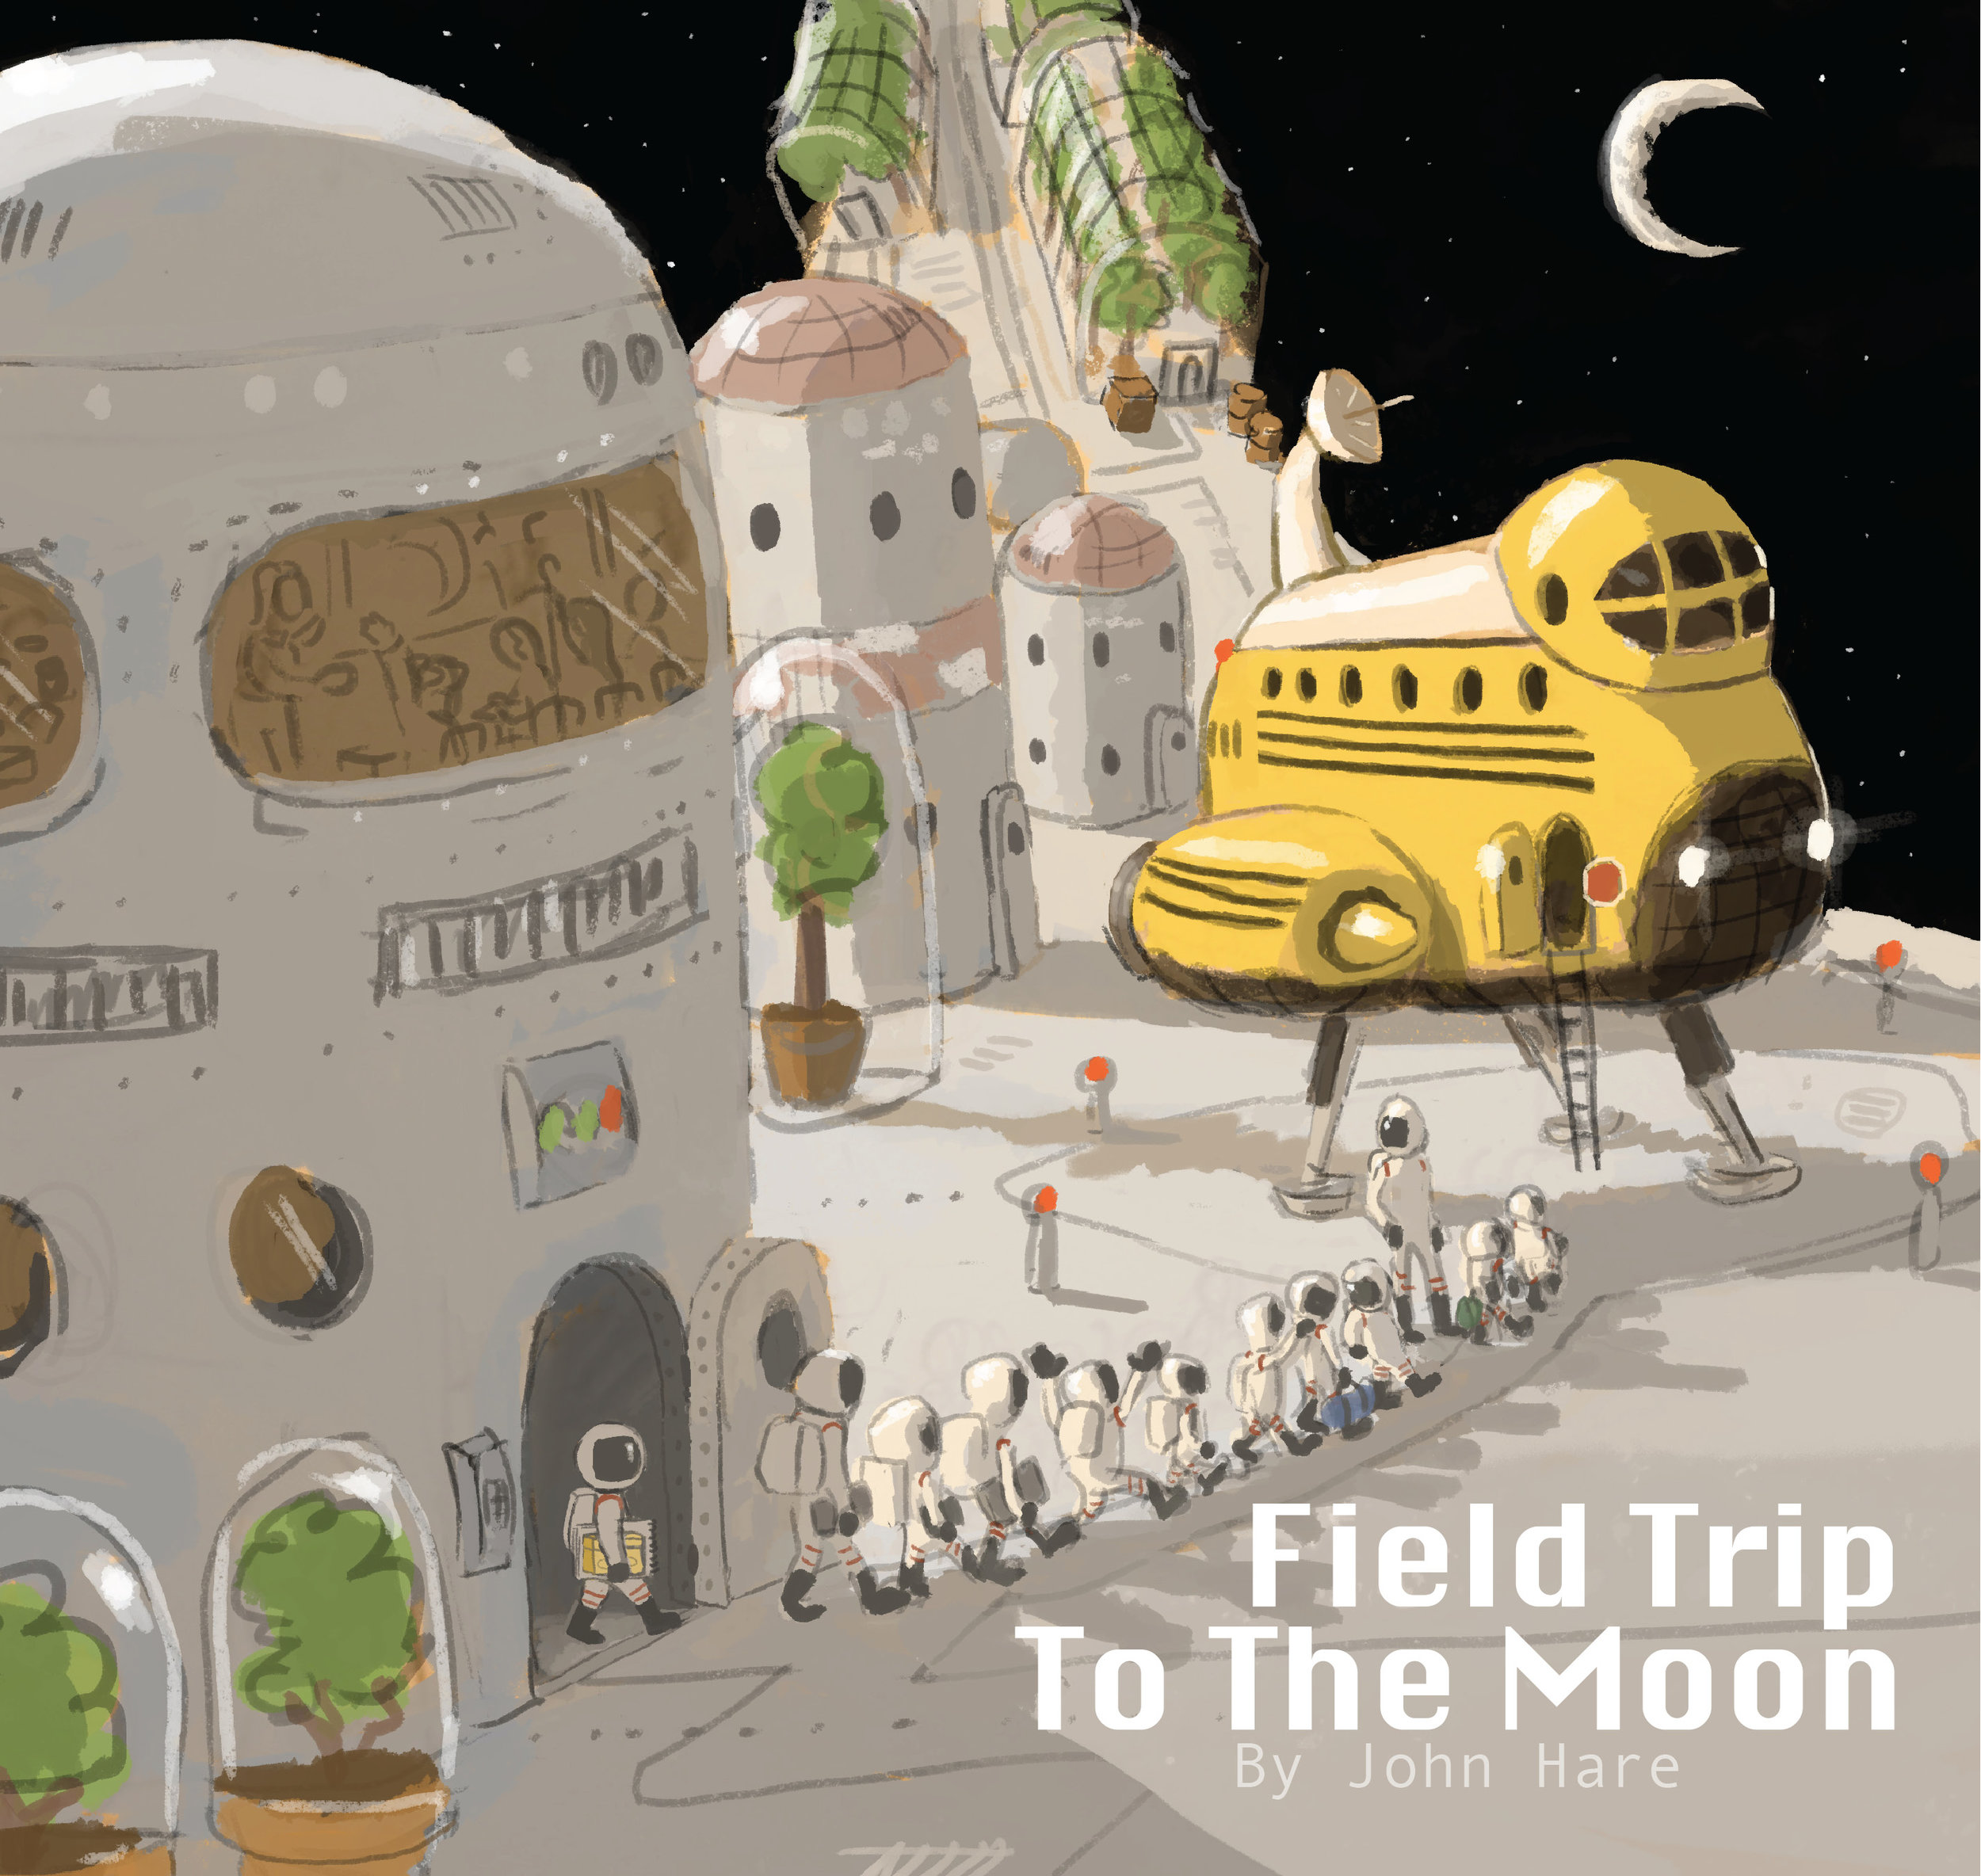 This sketch show an alternate cover design showing the kids departing a station that spins to make artificial gravity.